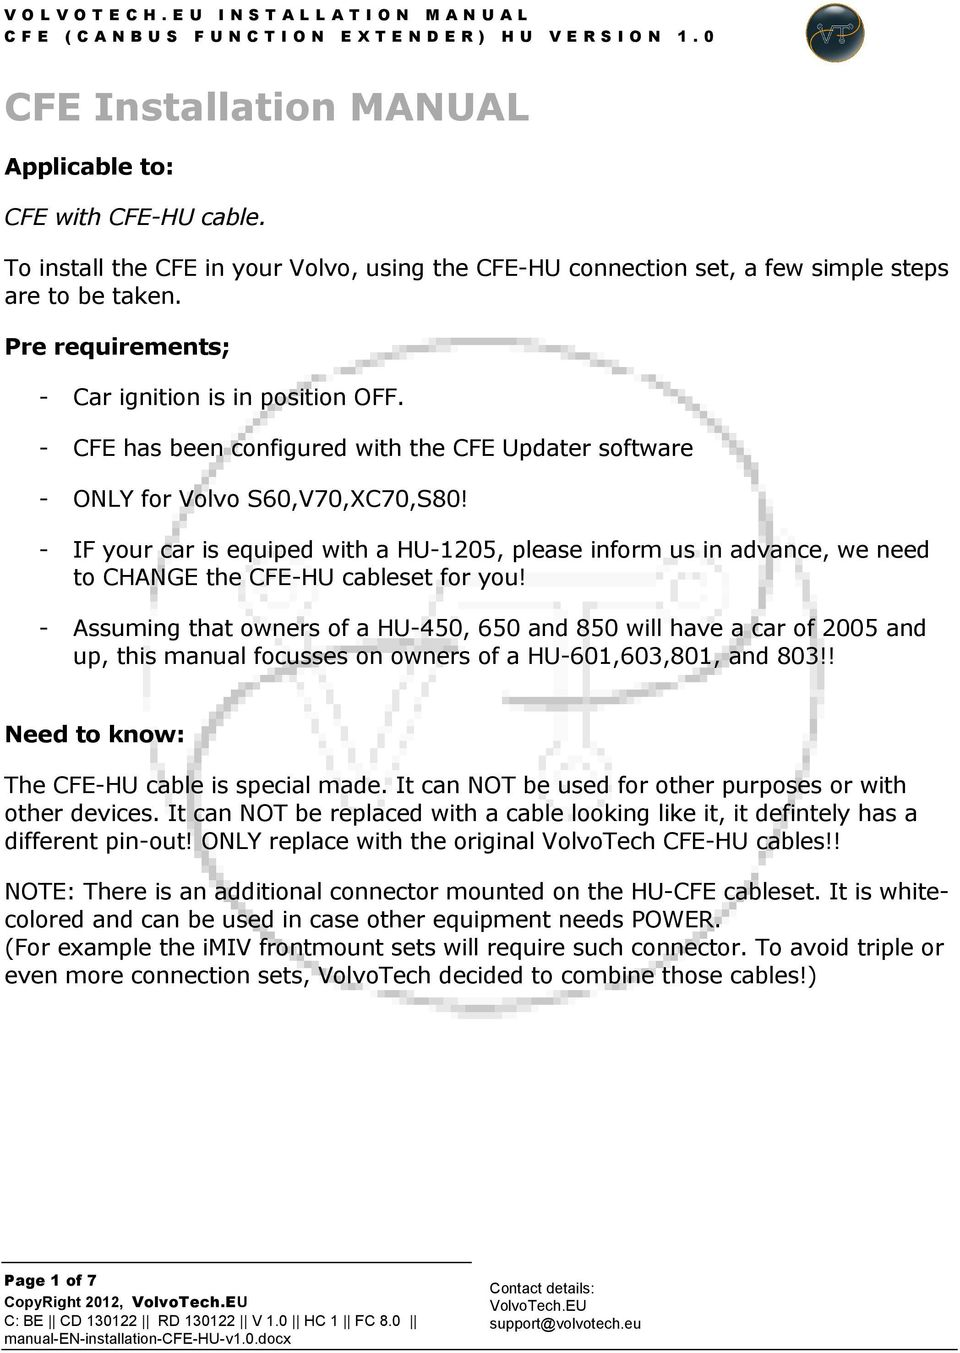 Volvotecheu Manual Installation For Cfe Volvo V70 Ignition Wiring Diagram If Your Car Is Equiped With A Hu1205 Please Inform Us In Advance We